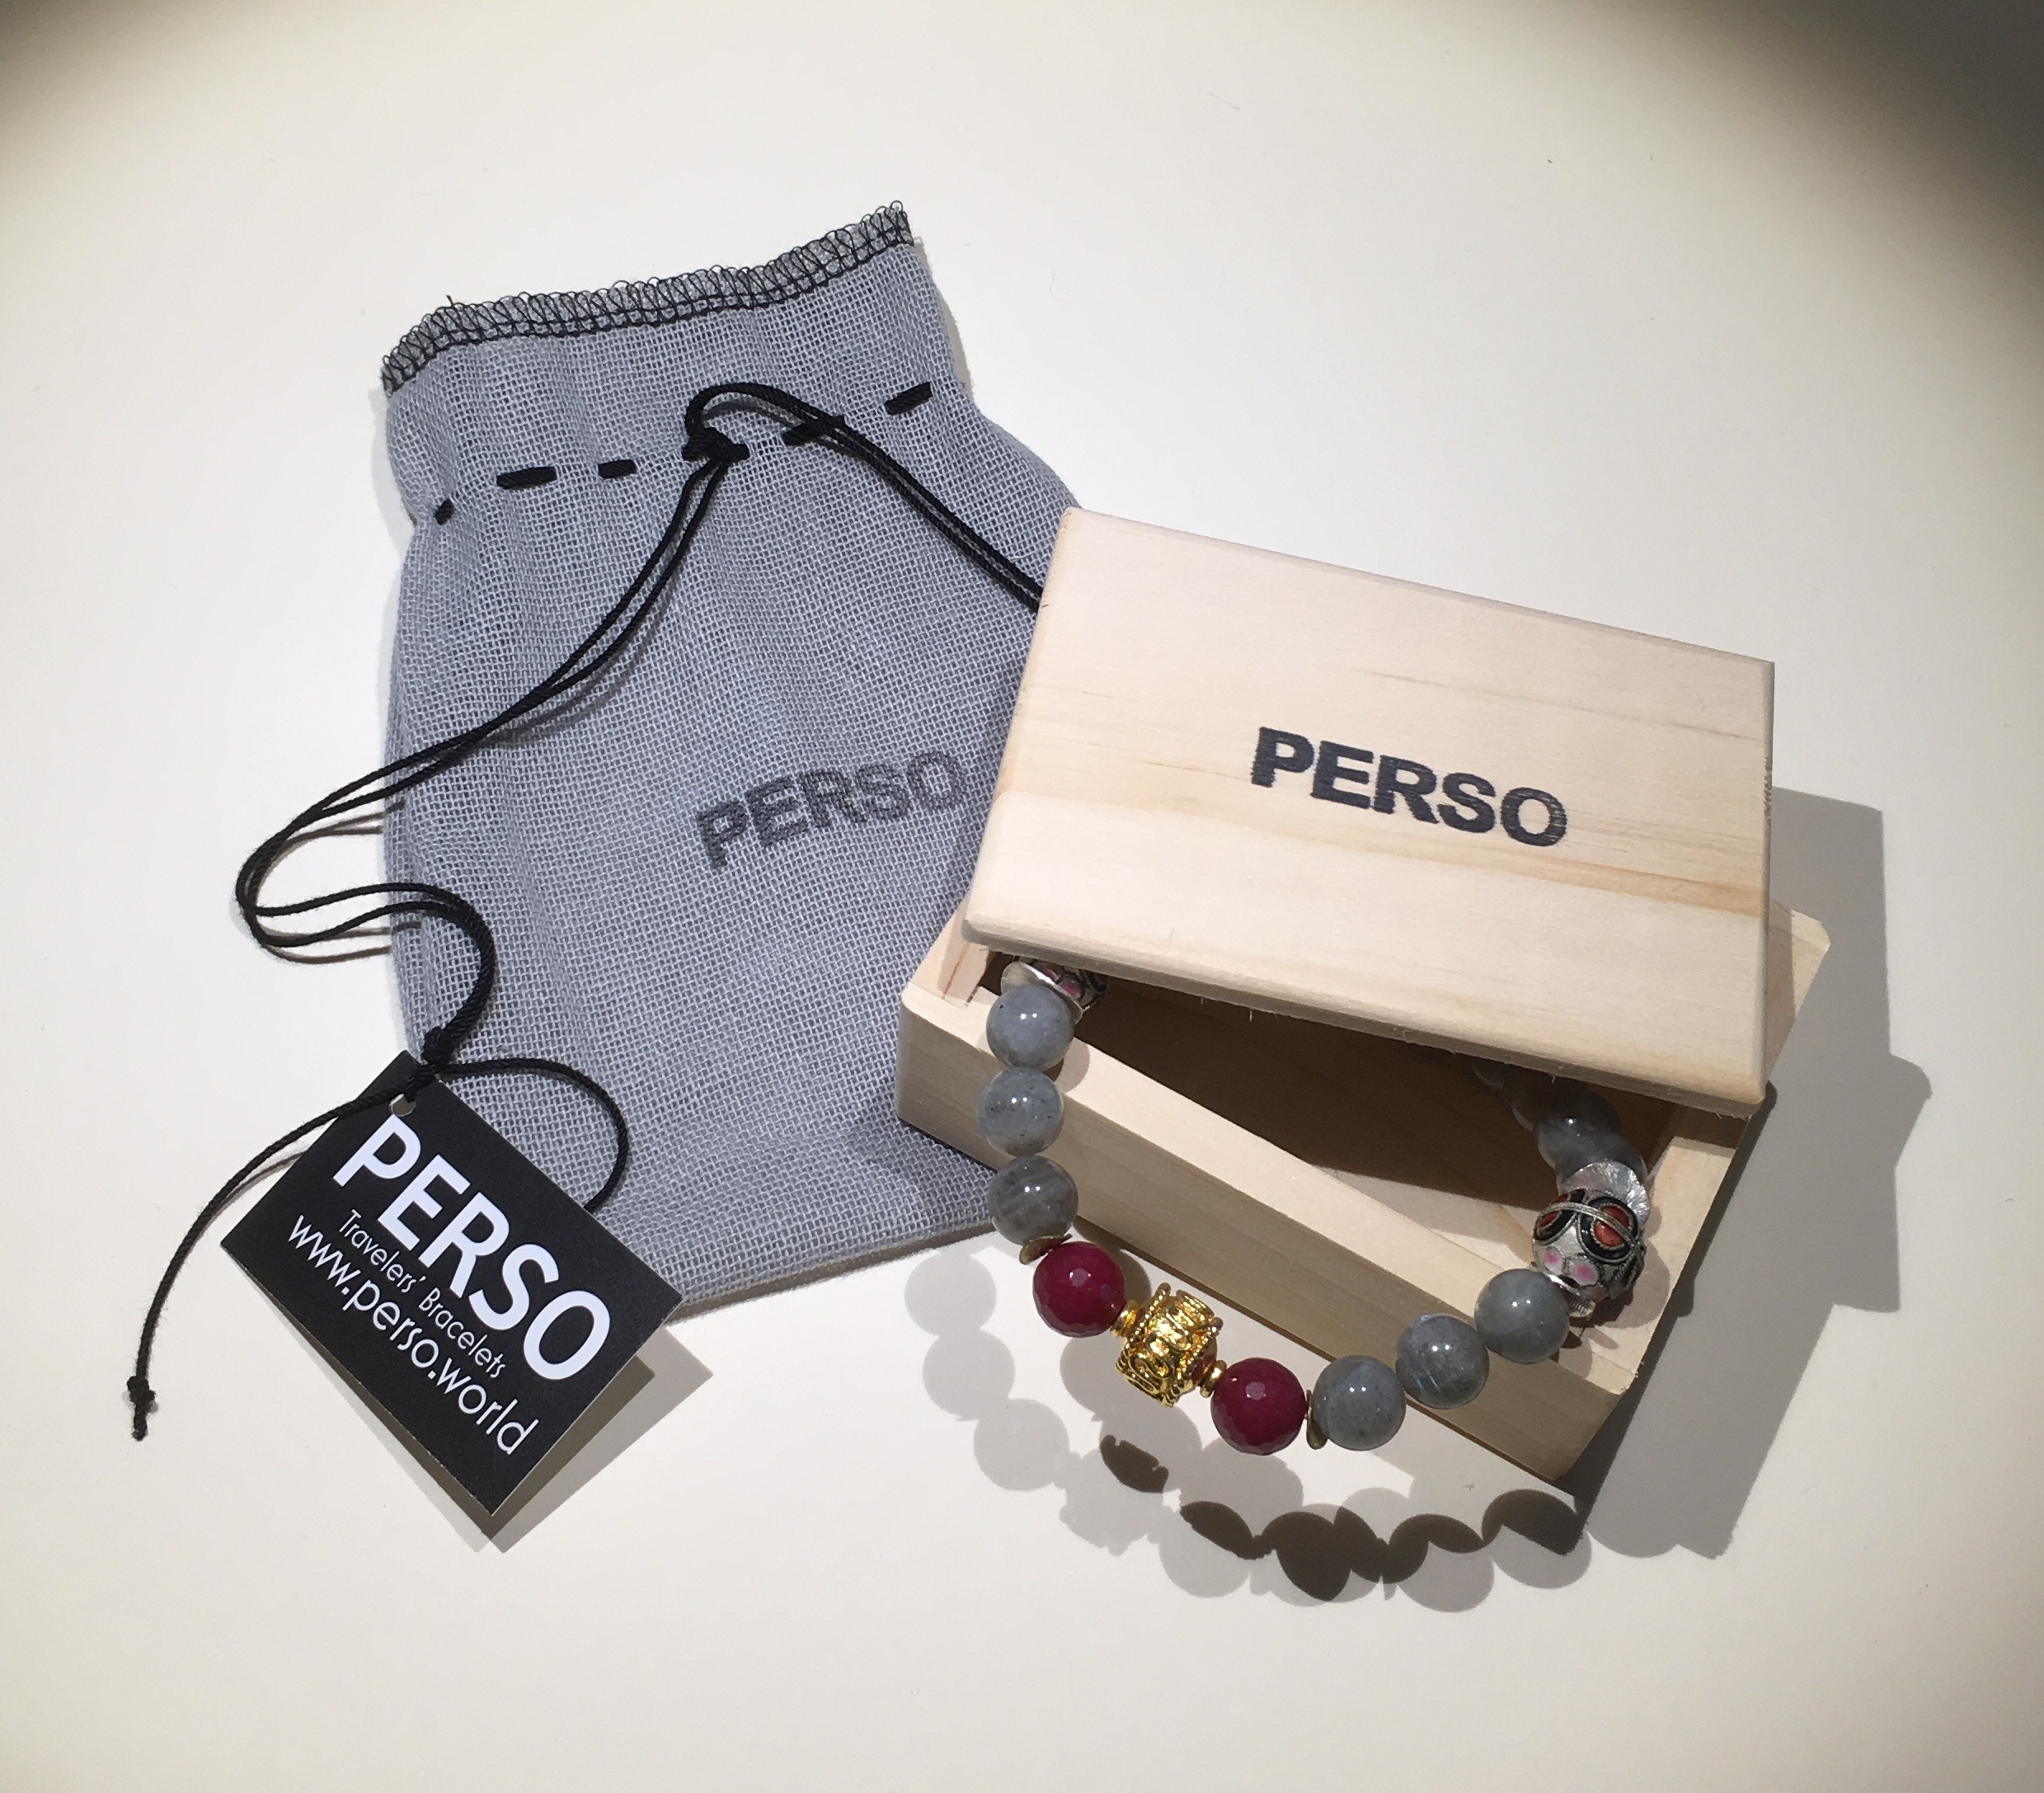 All Perso Bracelets are Limited Edition and include a safekeep bag and numbered box!